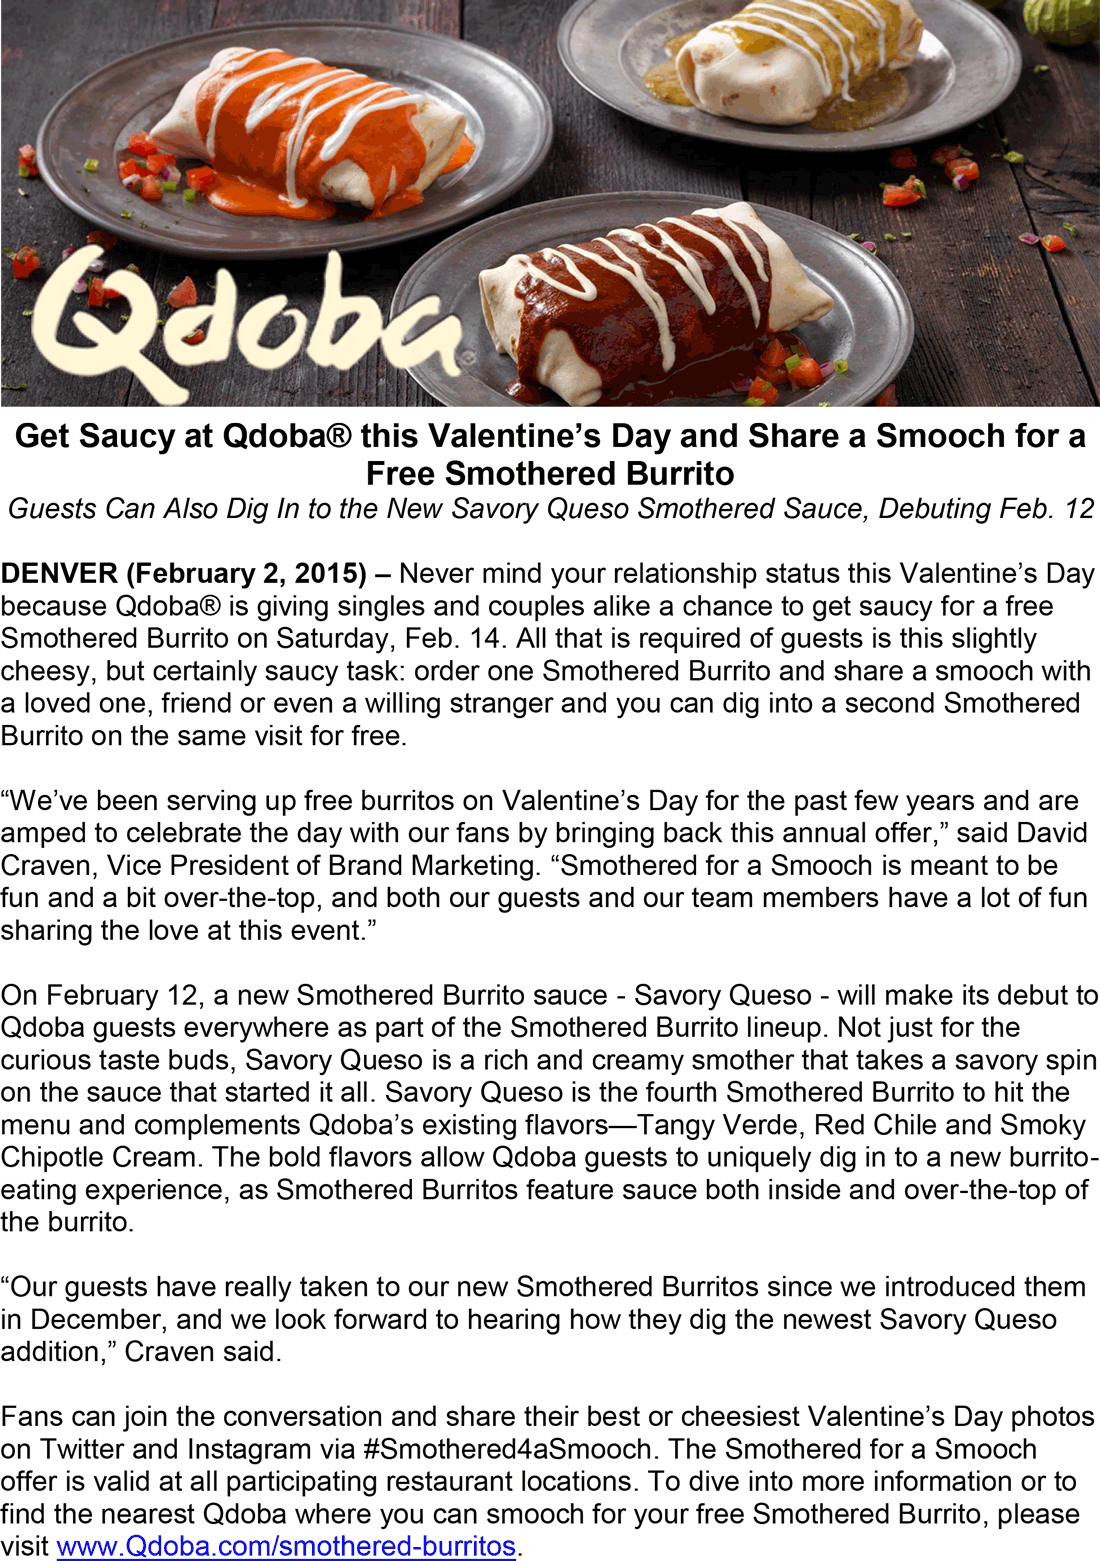 Qdoba Coupon May 2017 Second smothered burrito free for a Valentine kiss at Qdoba